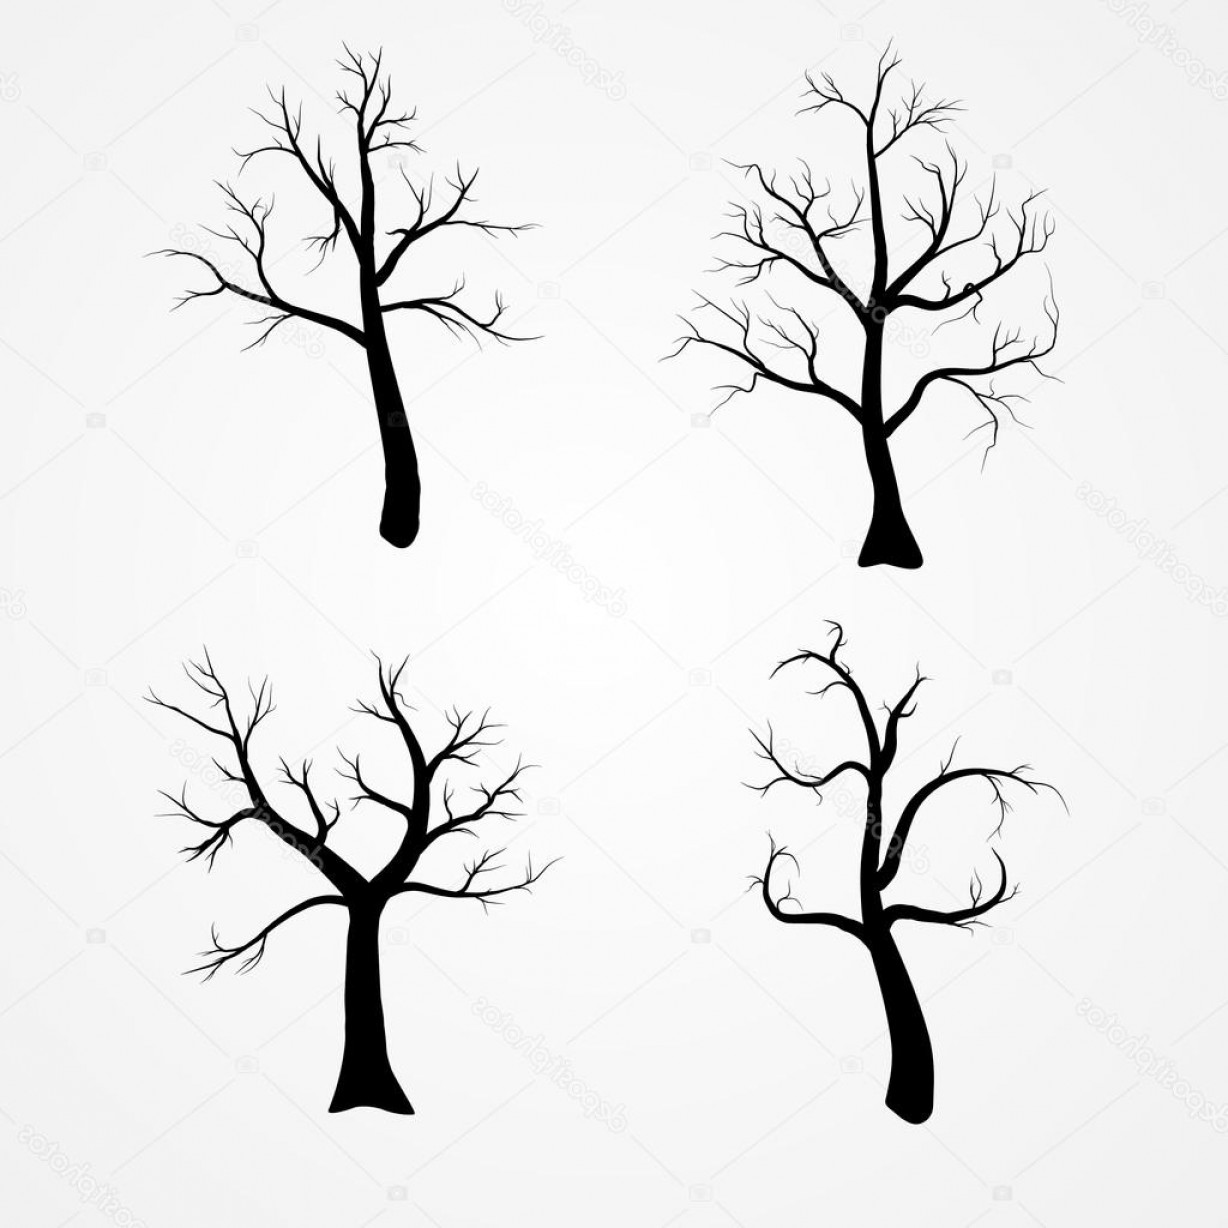 Winter Tree Silhouette Vector: Stock Illustration Autumn Or Winter Tree Silhouette